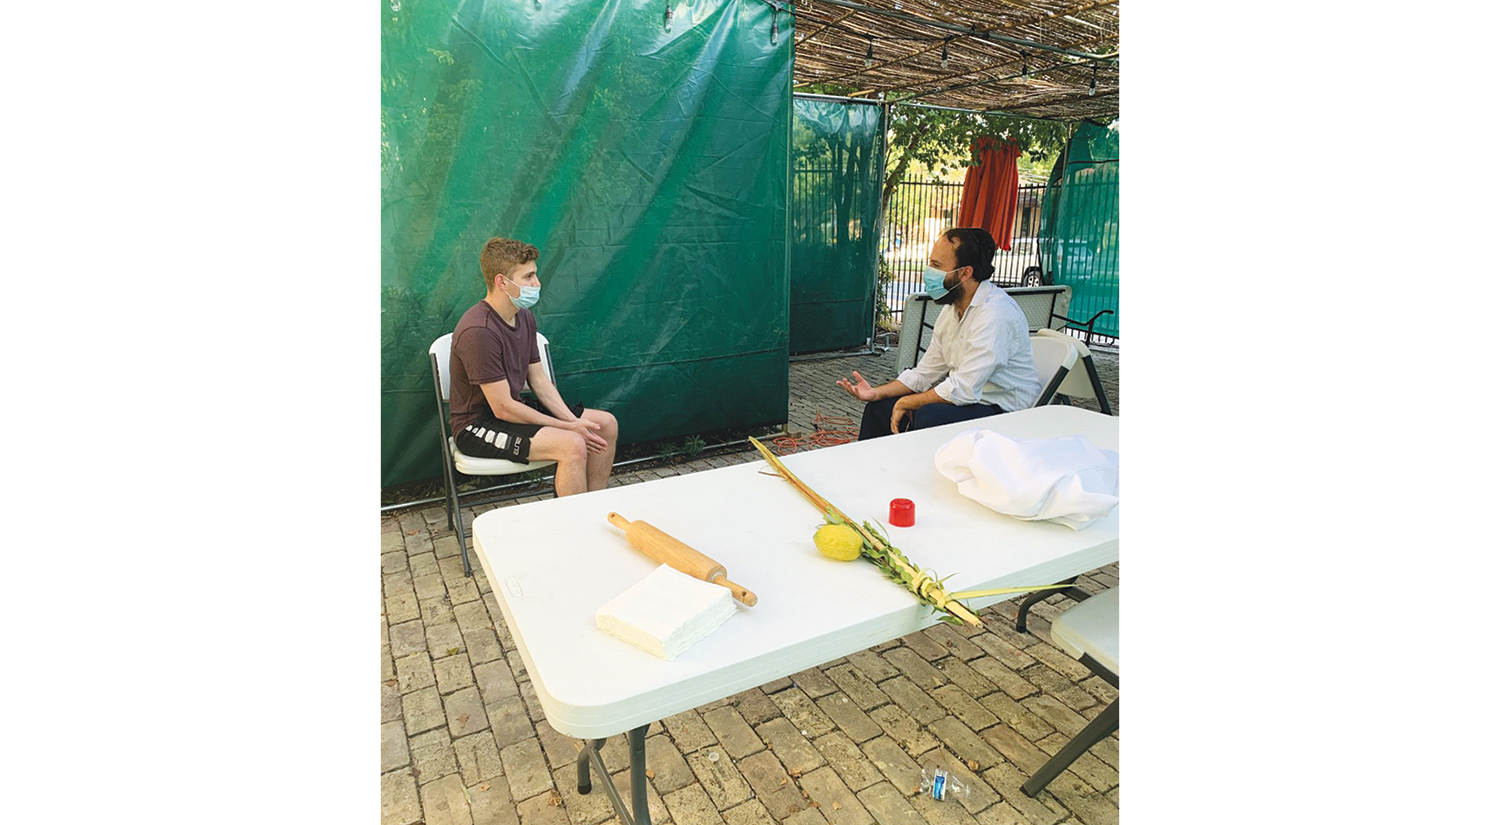 A college student sits on a chair and talks with a rabbi in a sukkah.